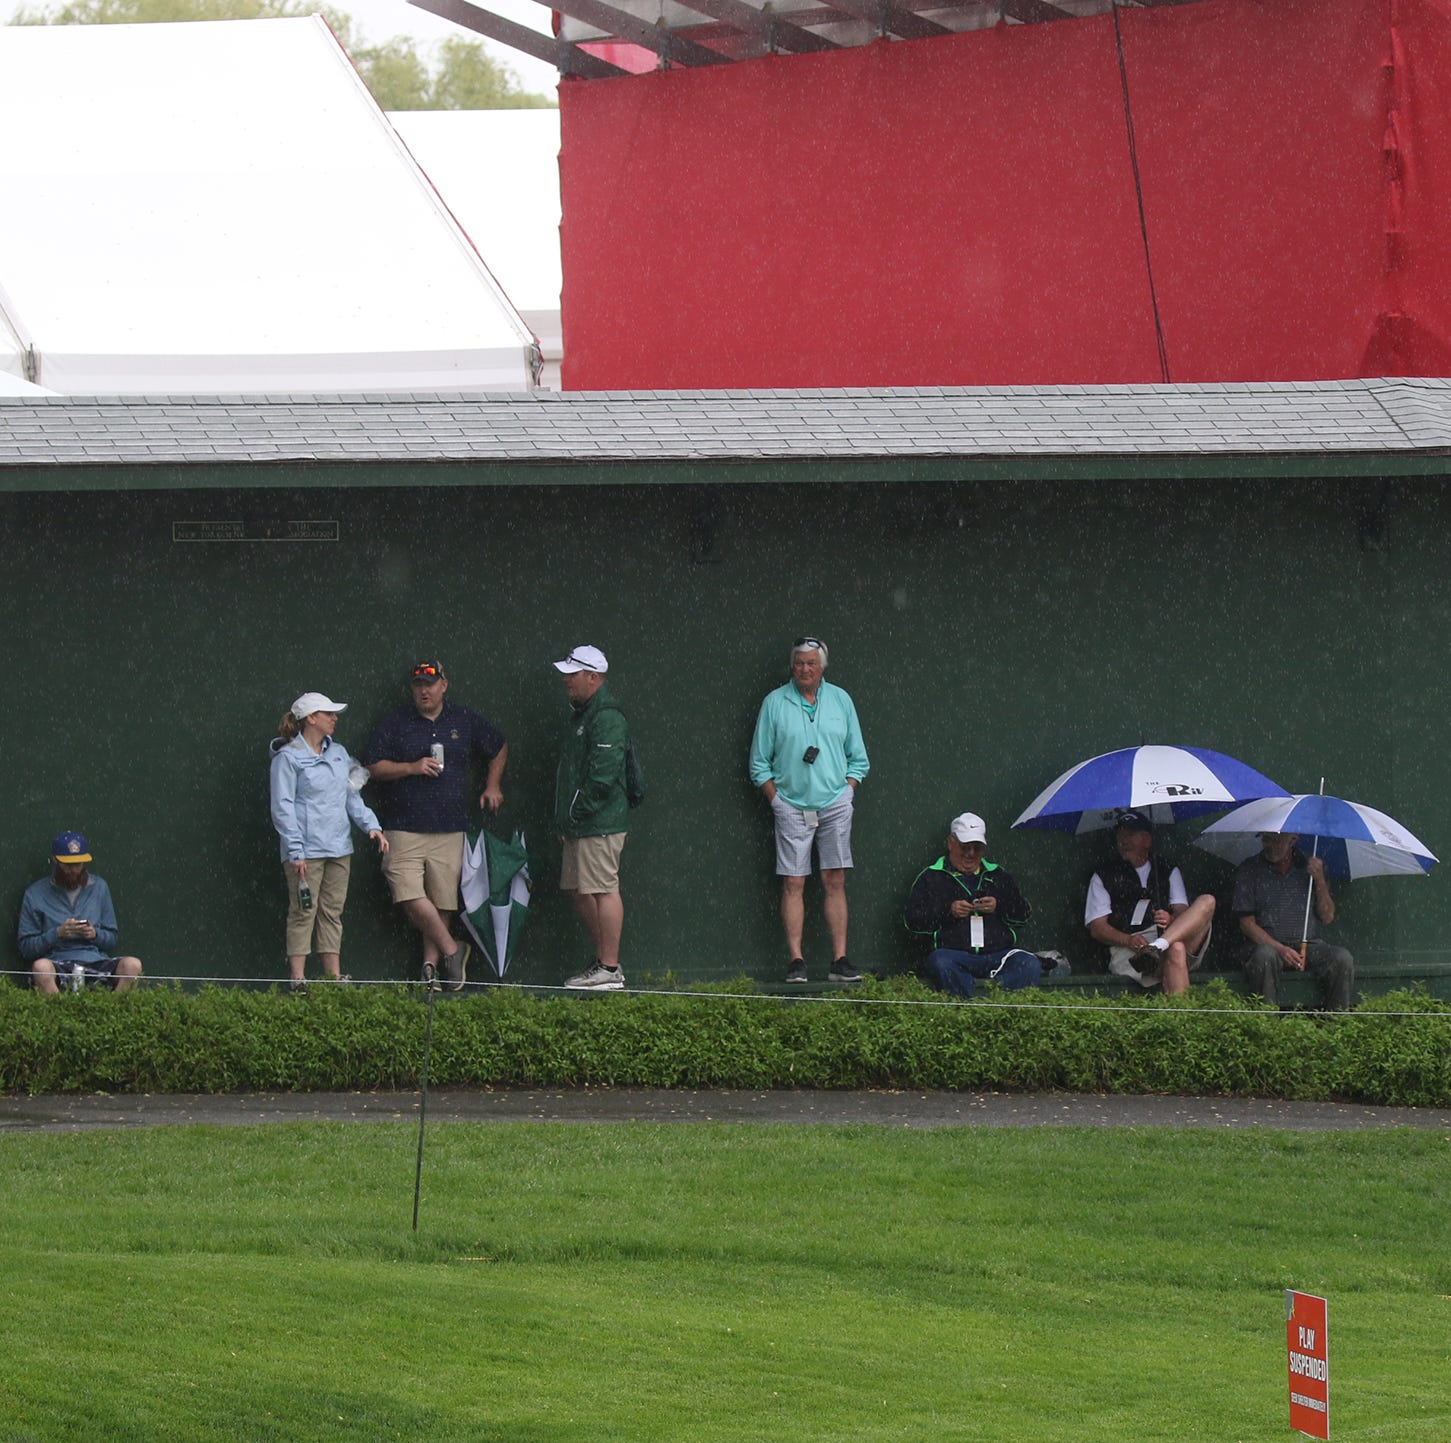 Senior PGA 2019 Day One: Play resumes after more than two-hour delay